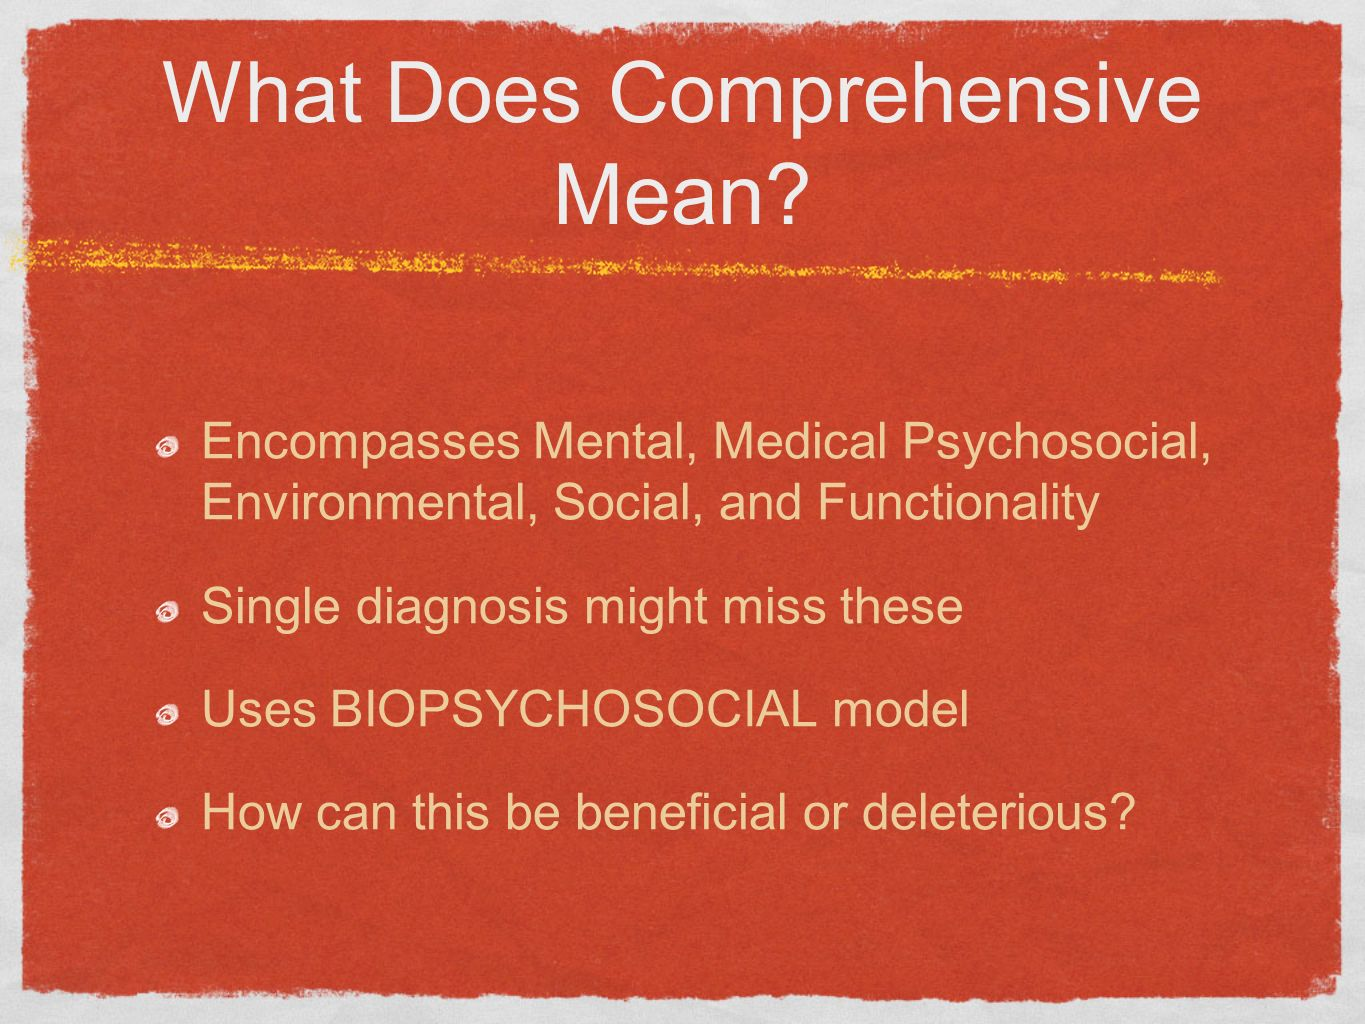 What Does Comprehensive Mean